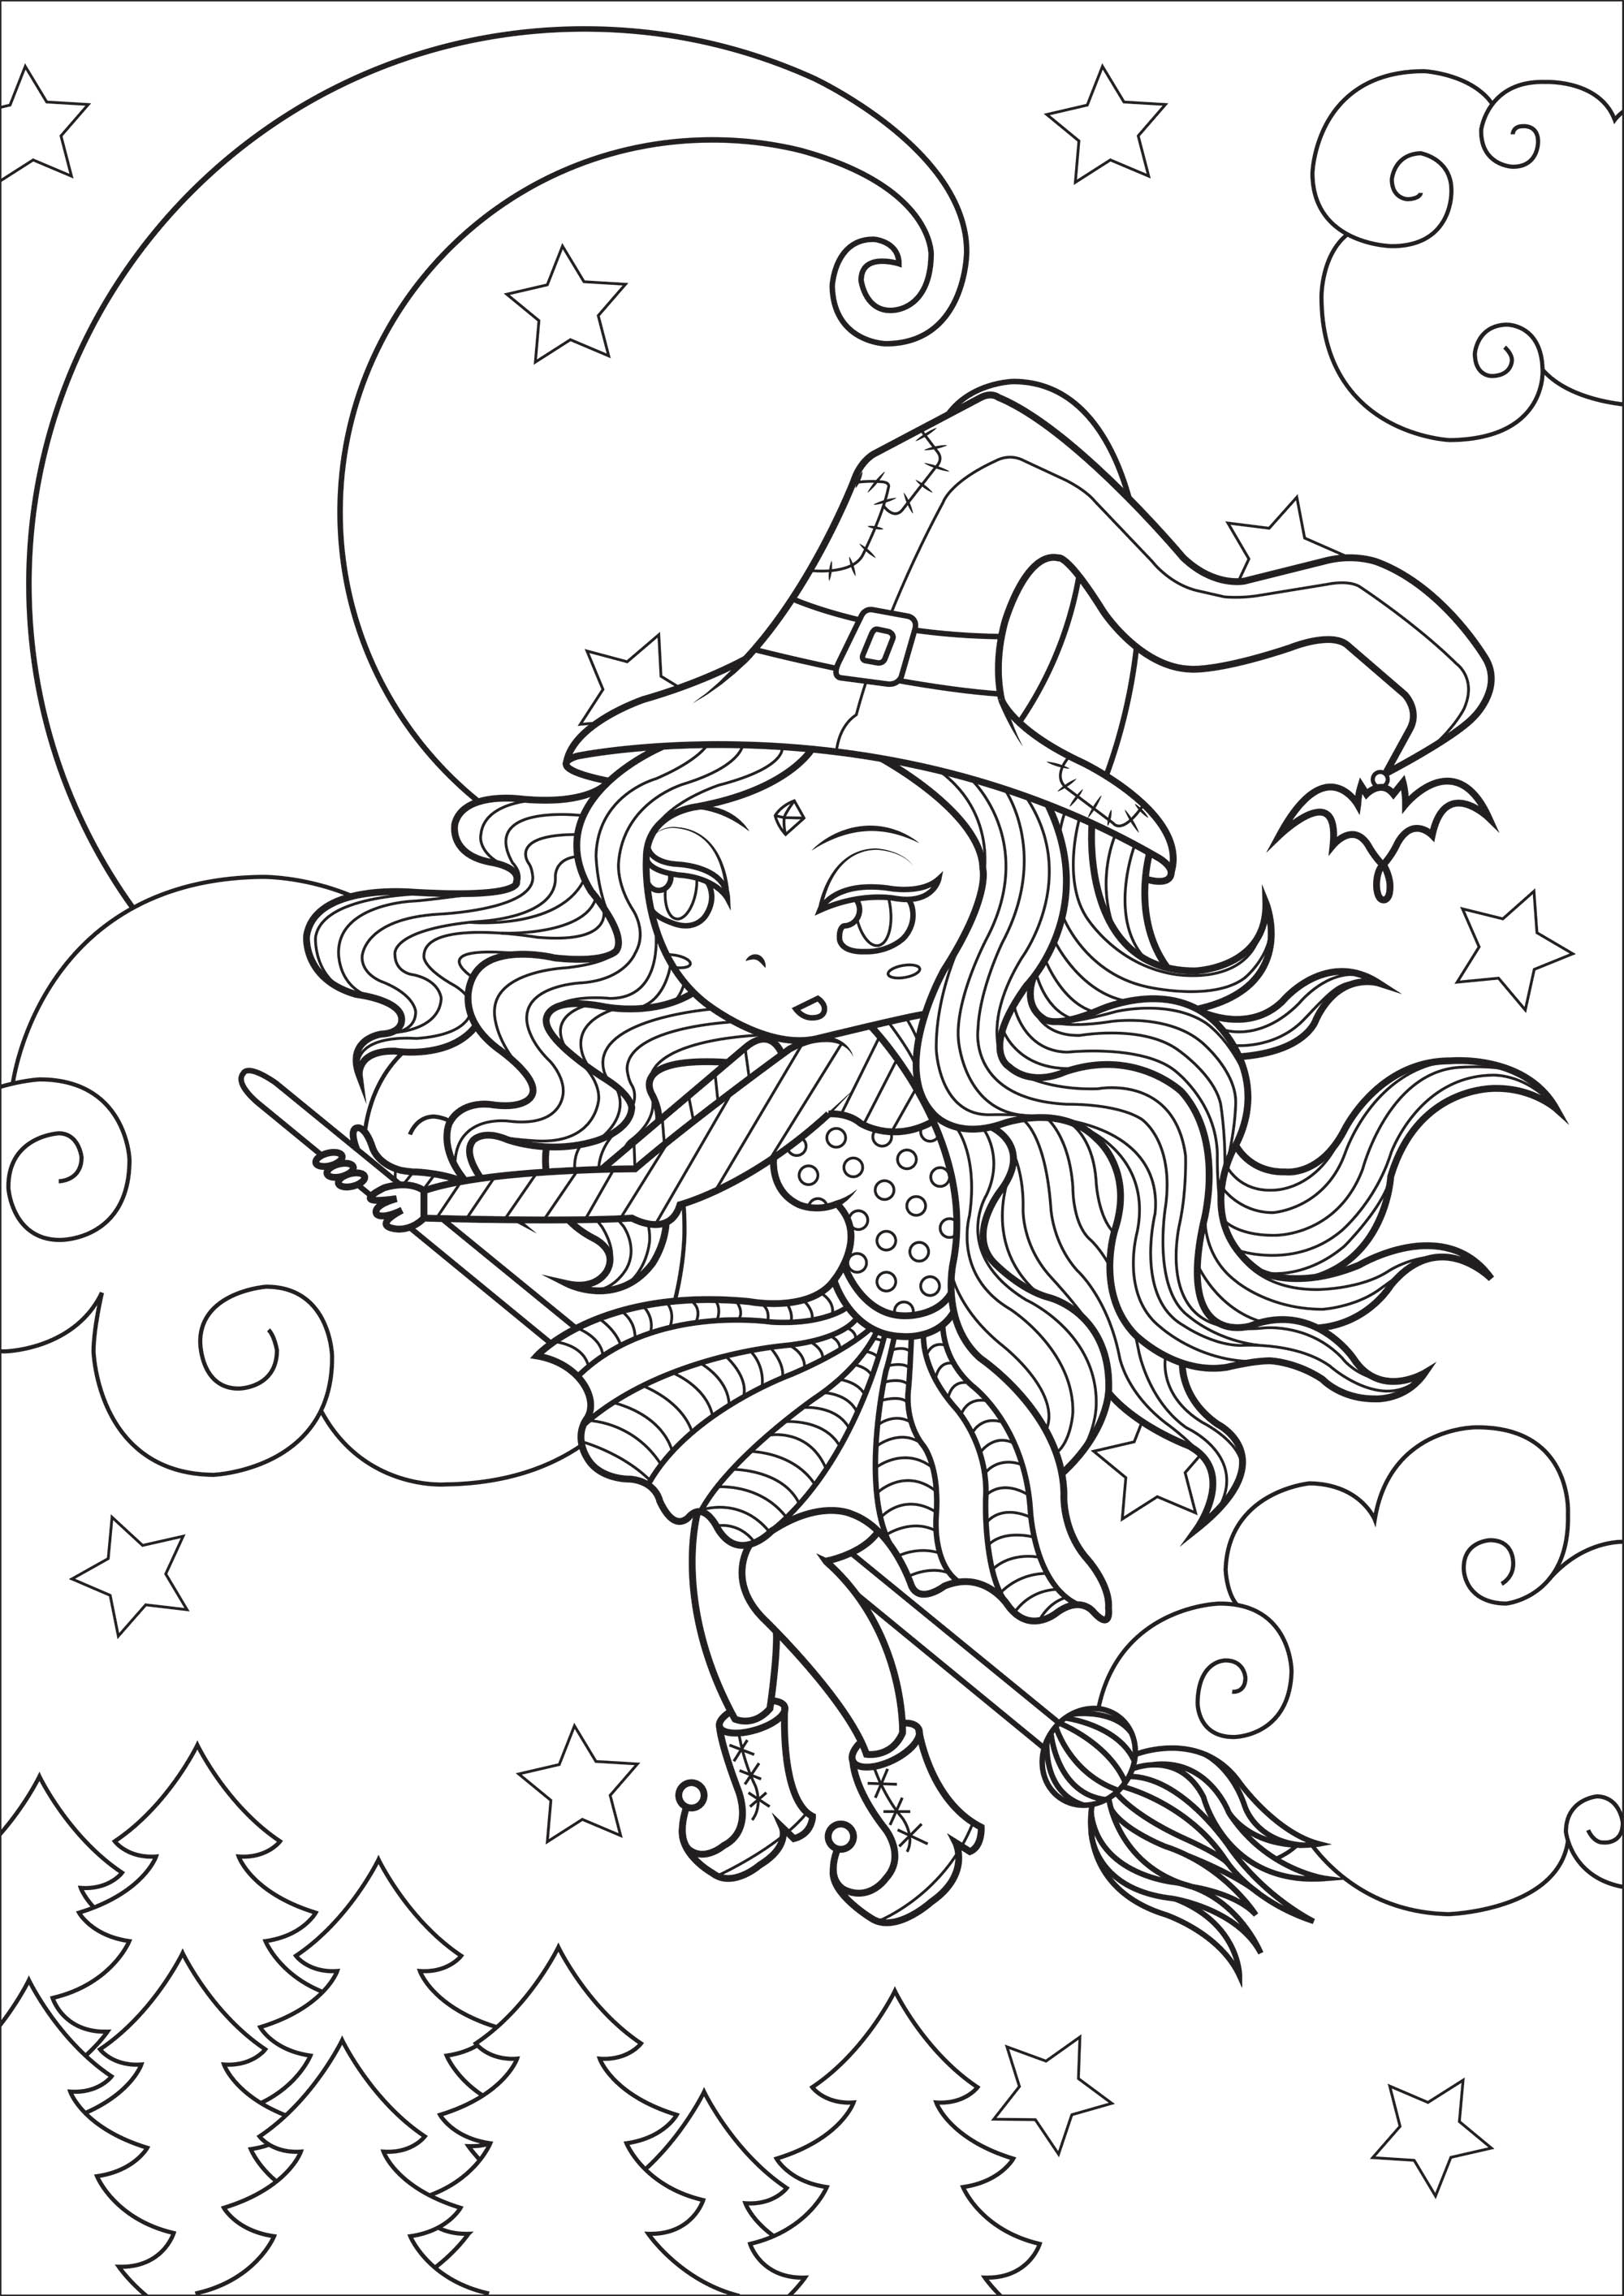 Witch in flight, with beautiful moon and starry sky in background